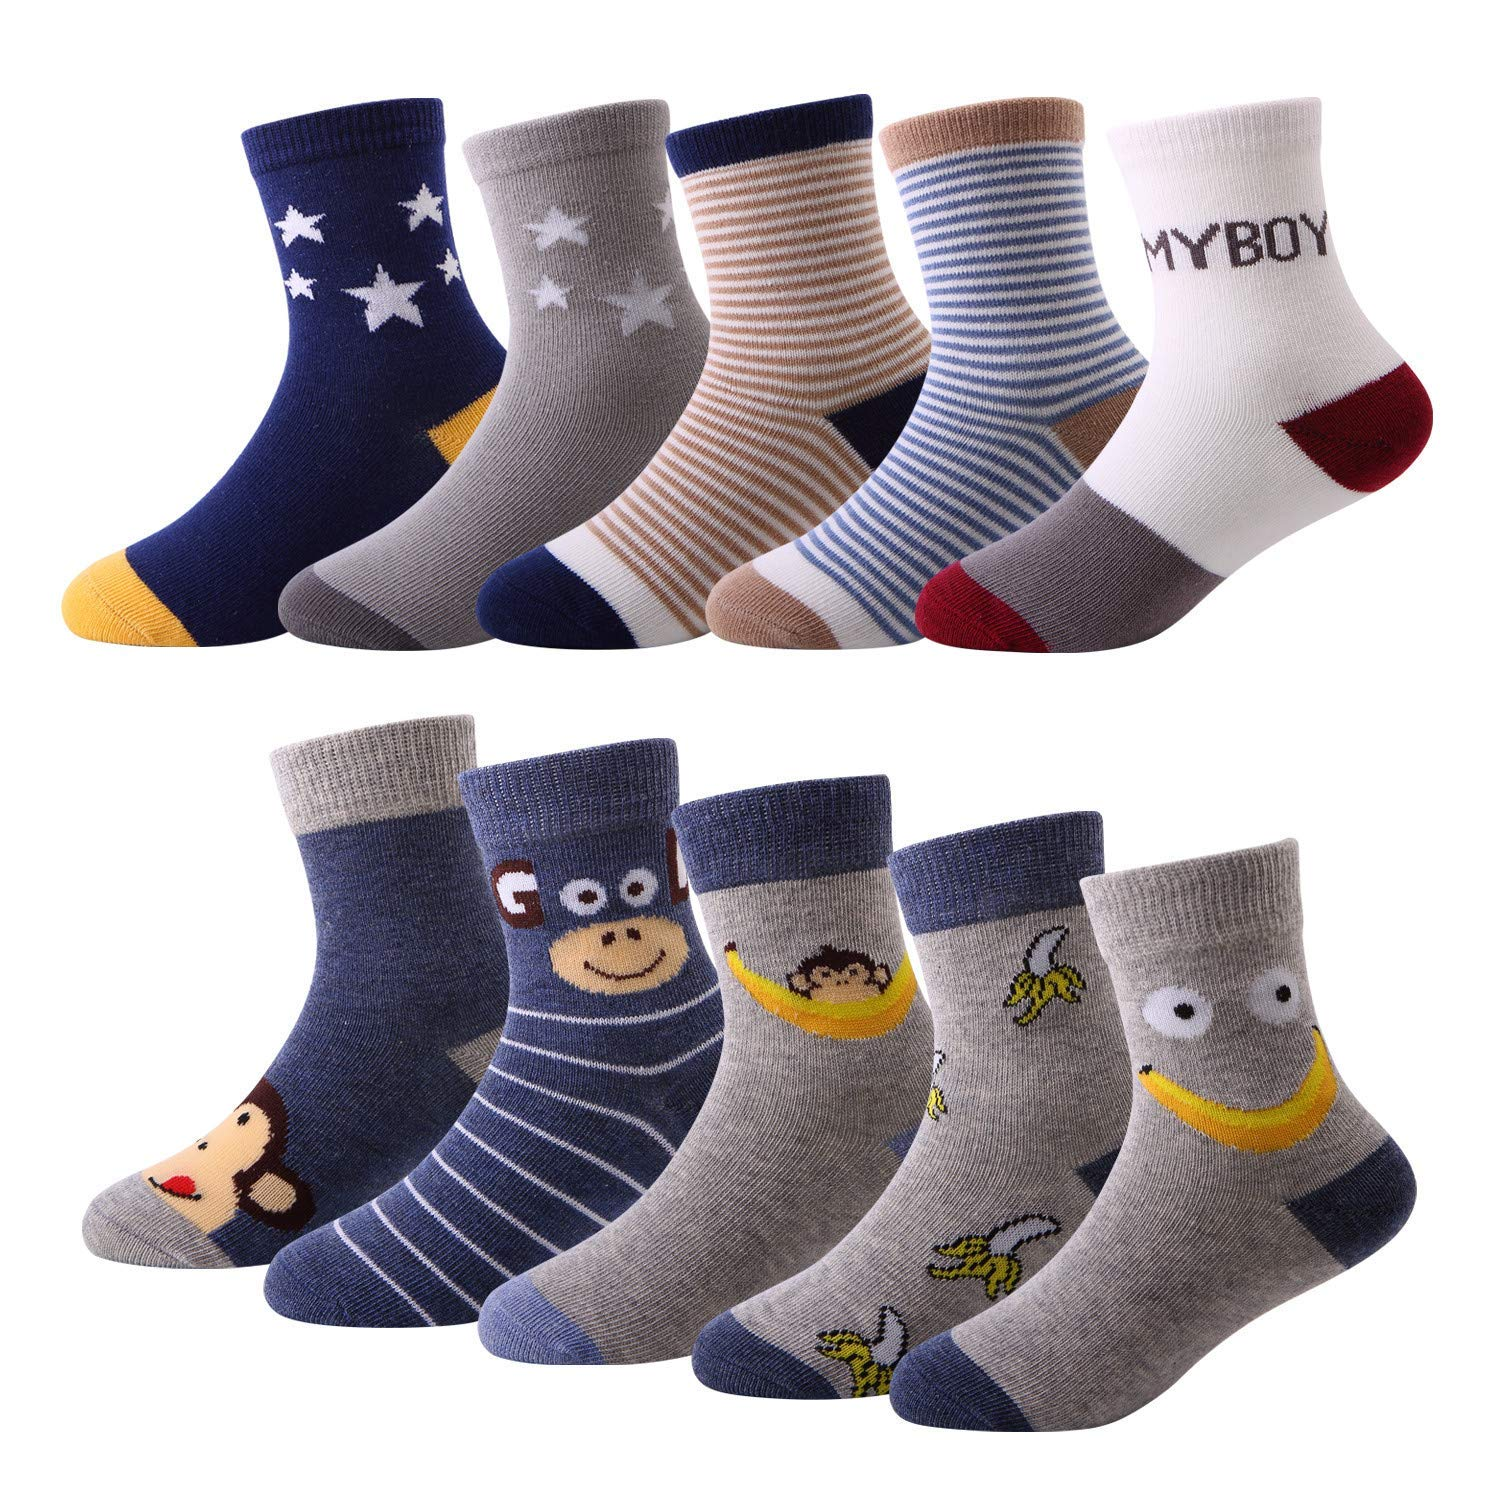 10 Pairs Kids Boys Colorful Novelty Fashion Cotton Crew Socks